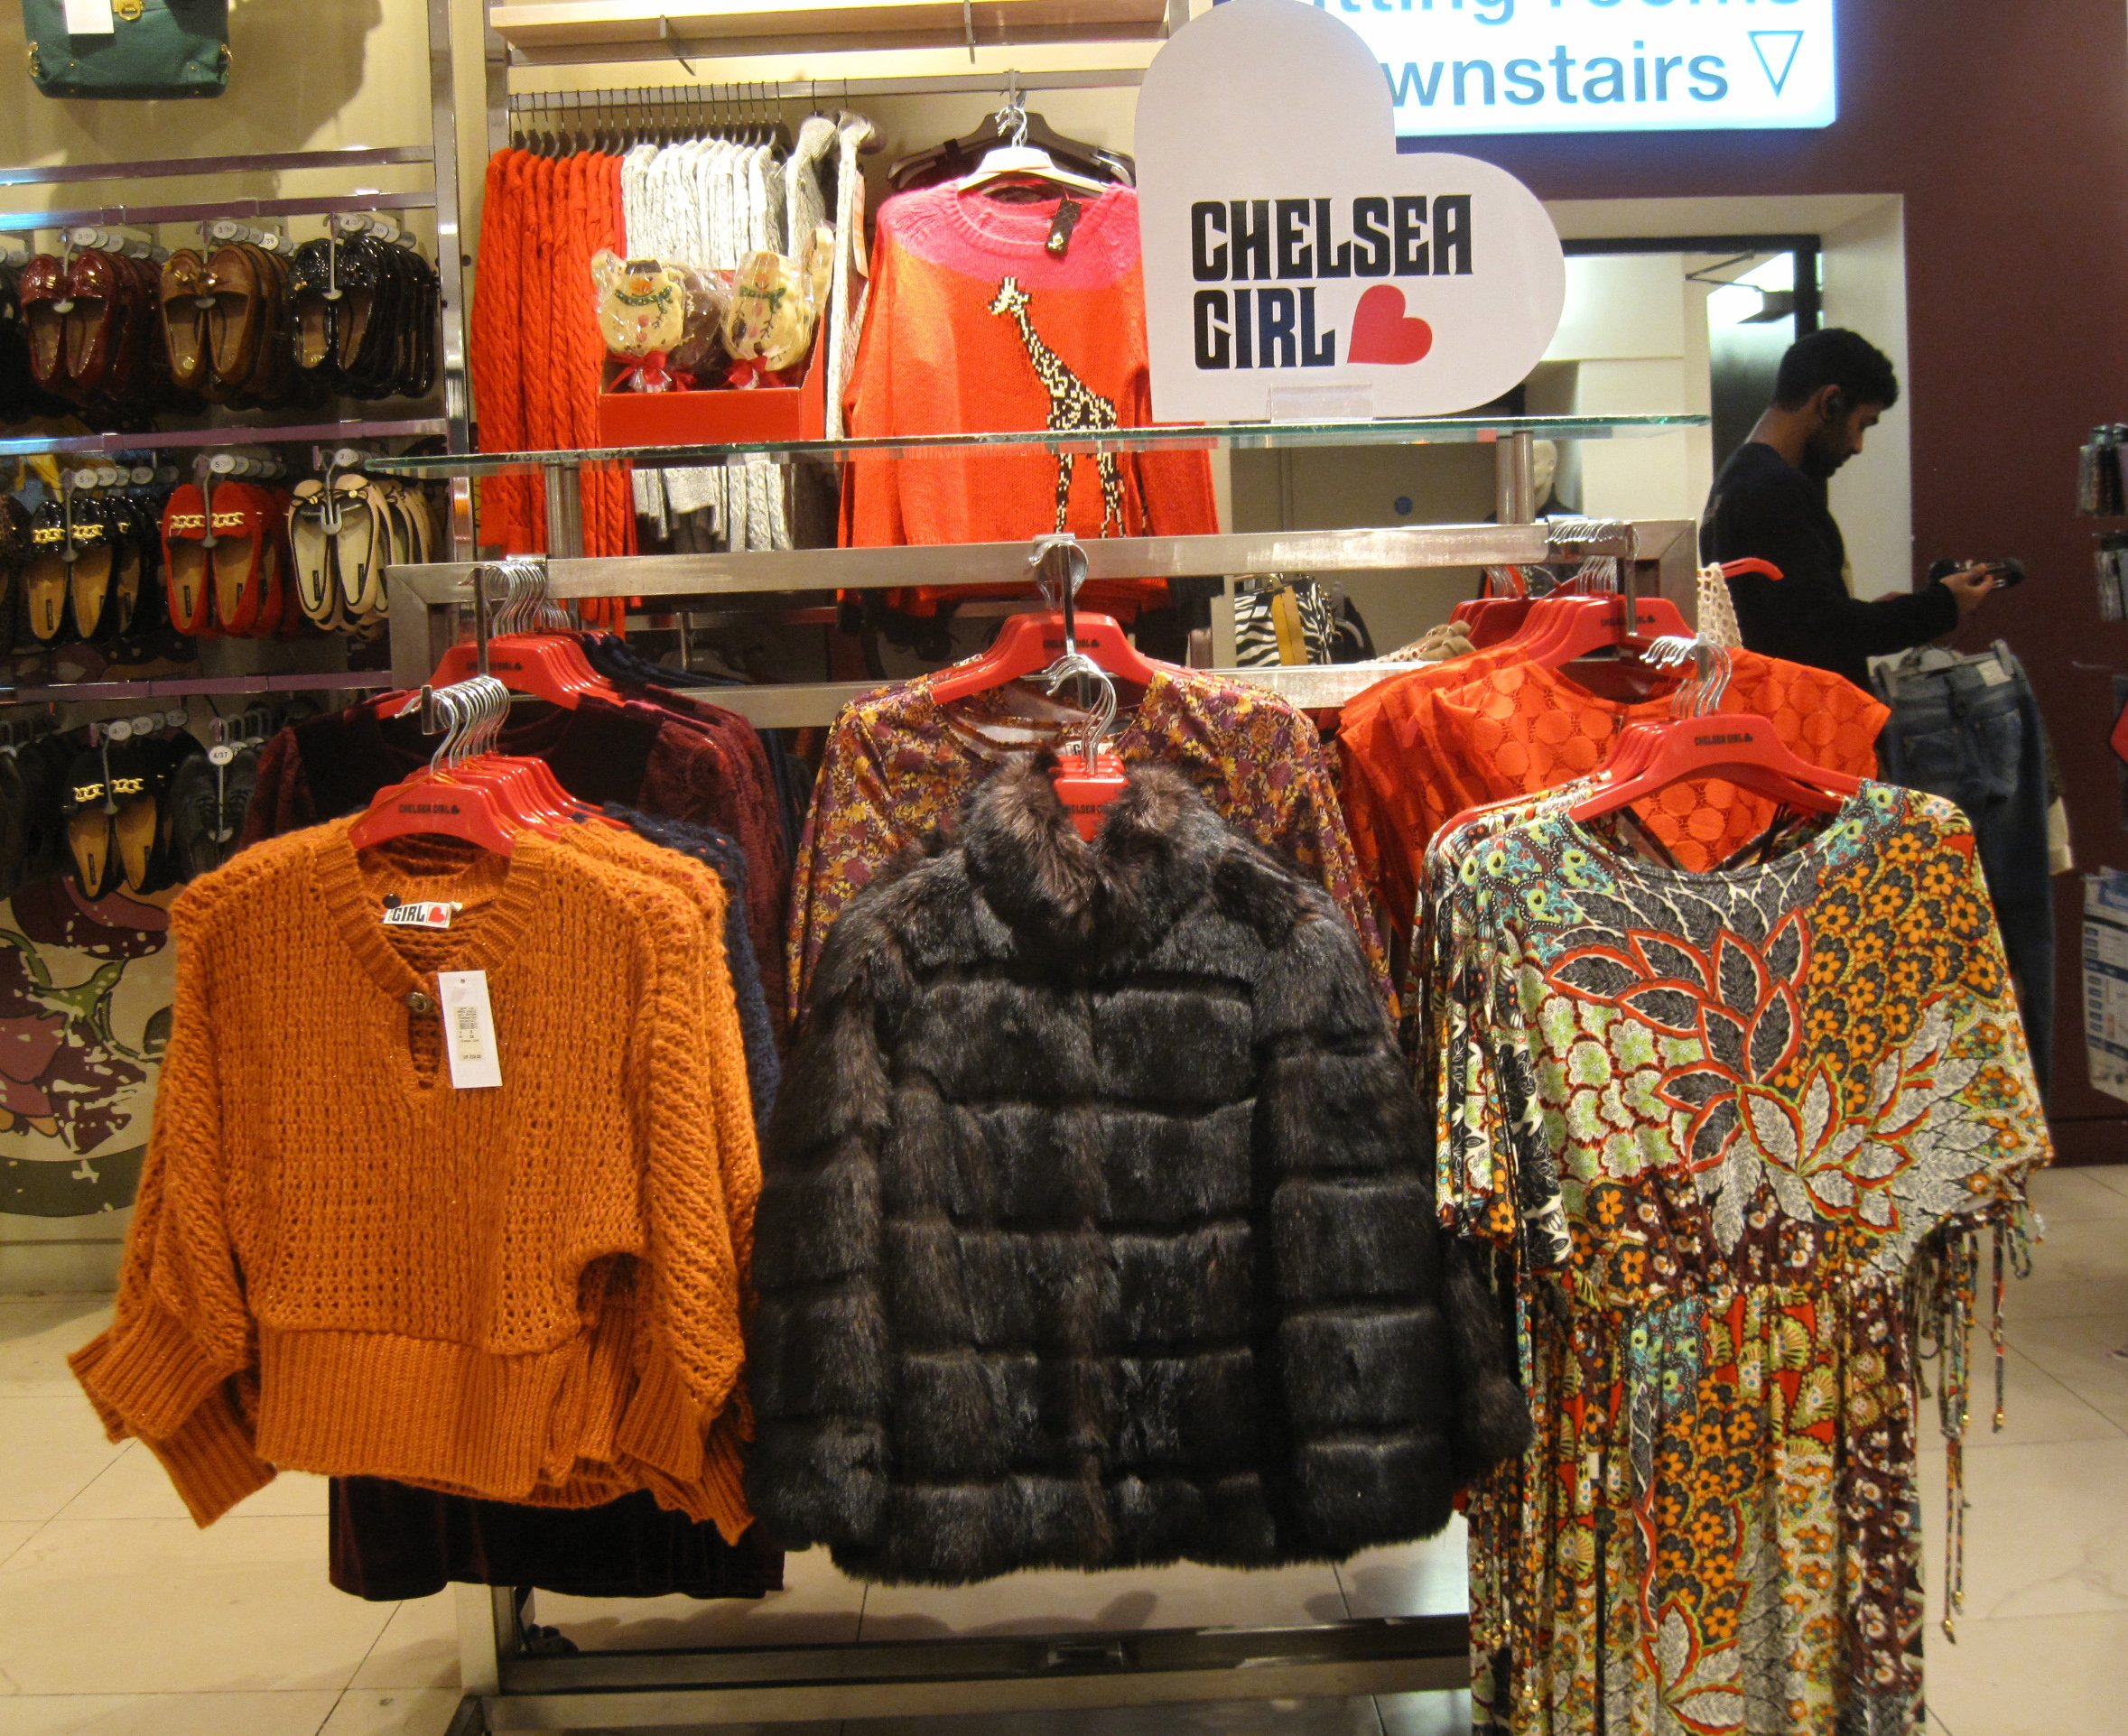 Chelsea girl clothing store